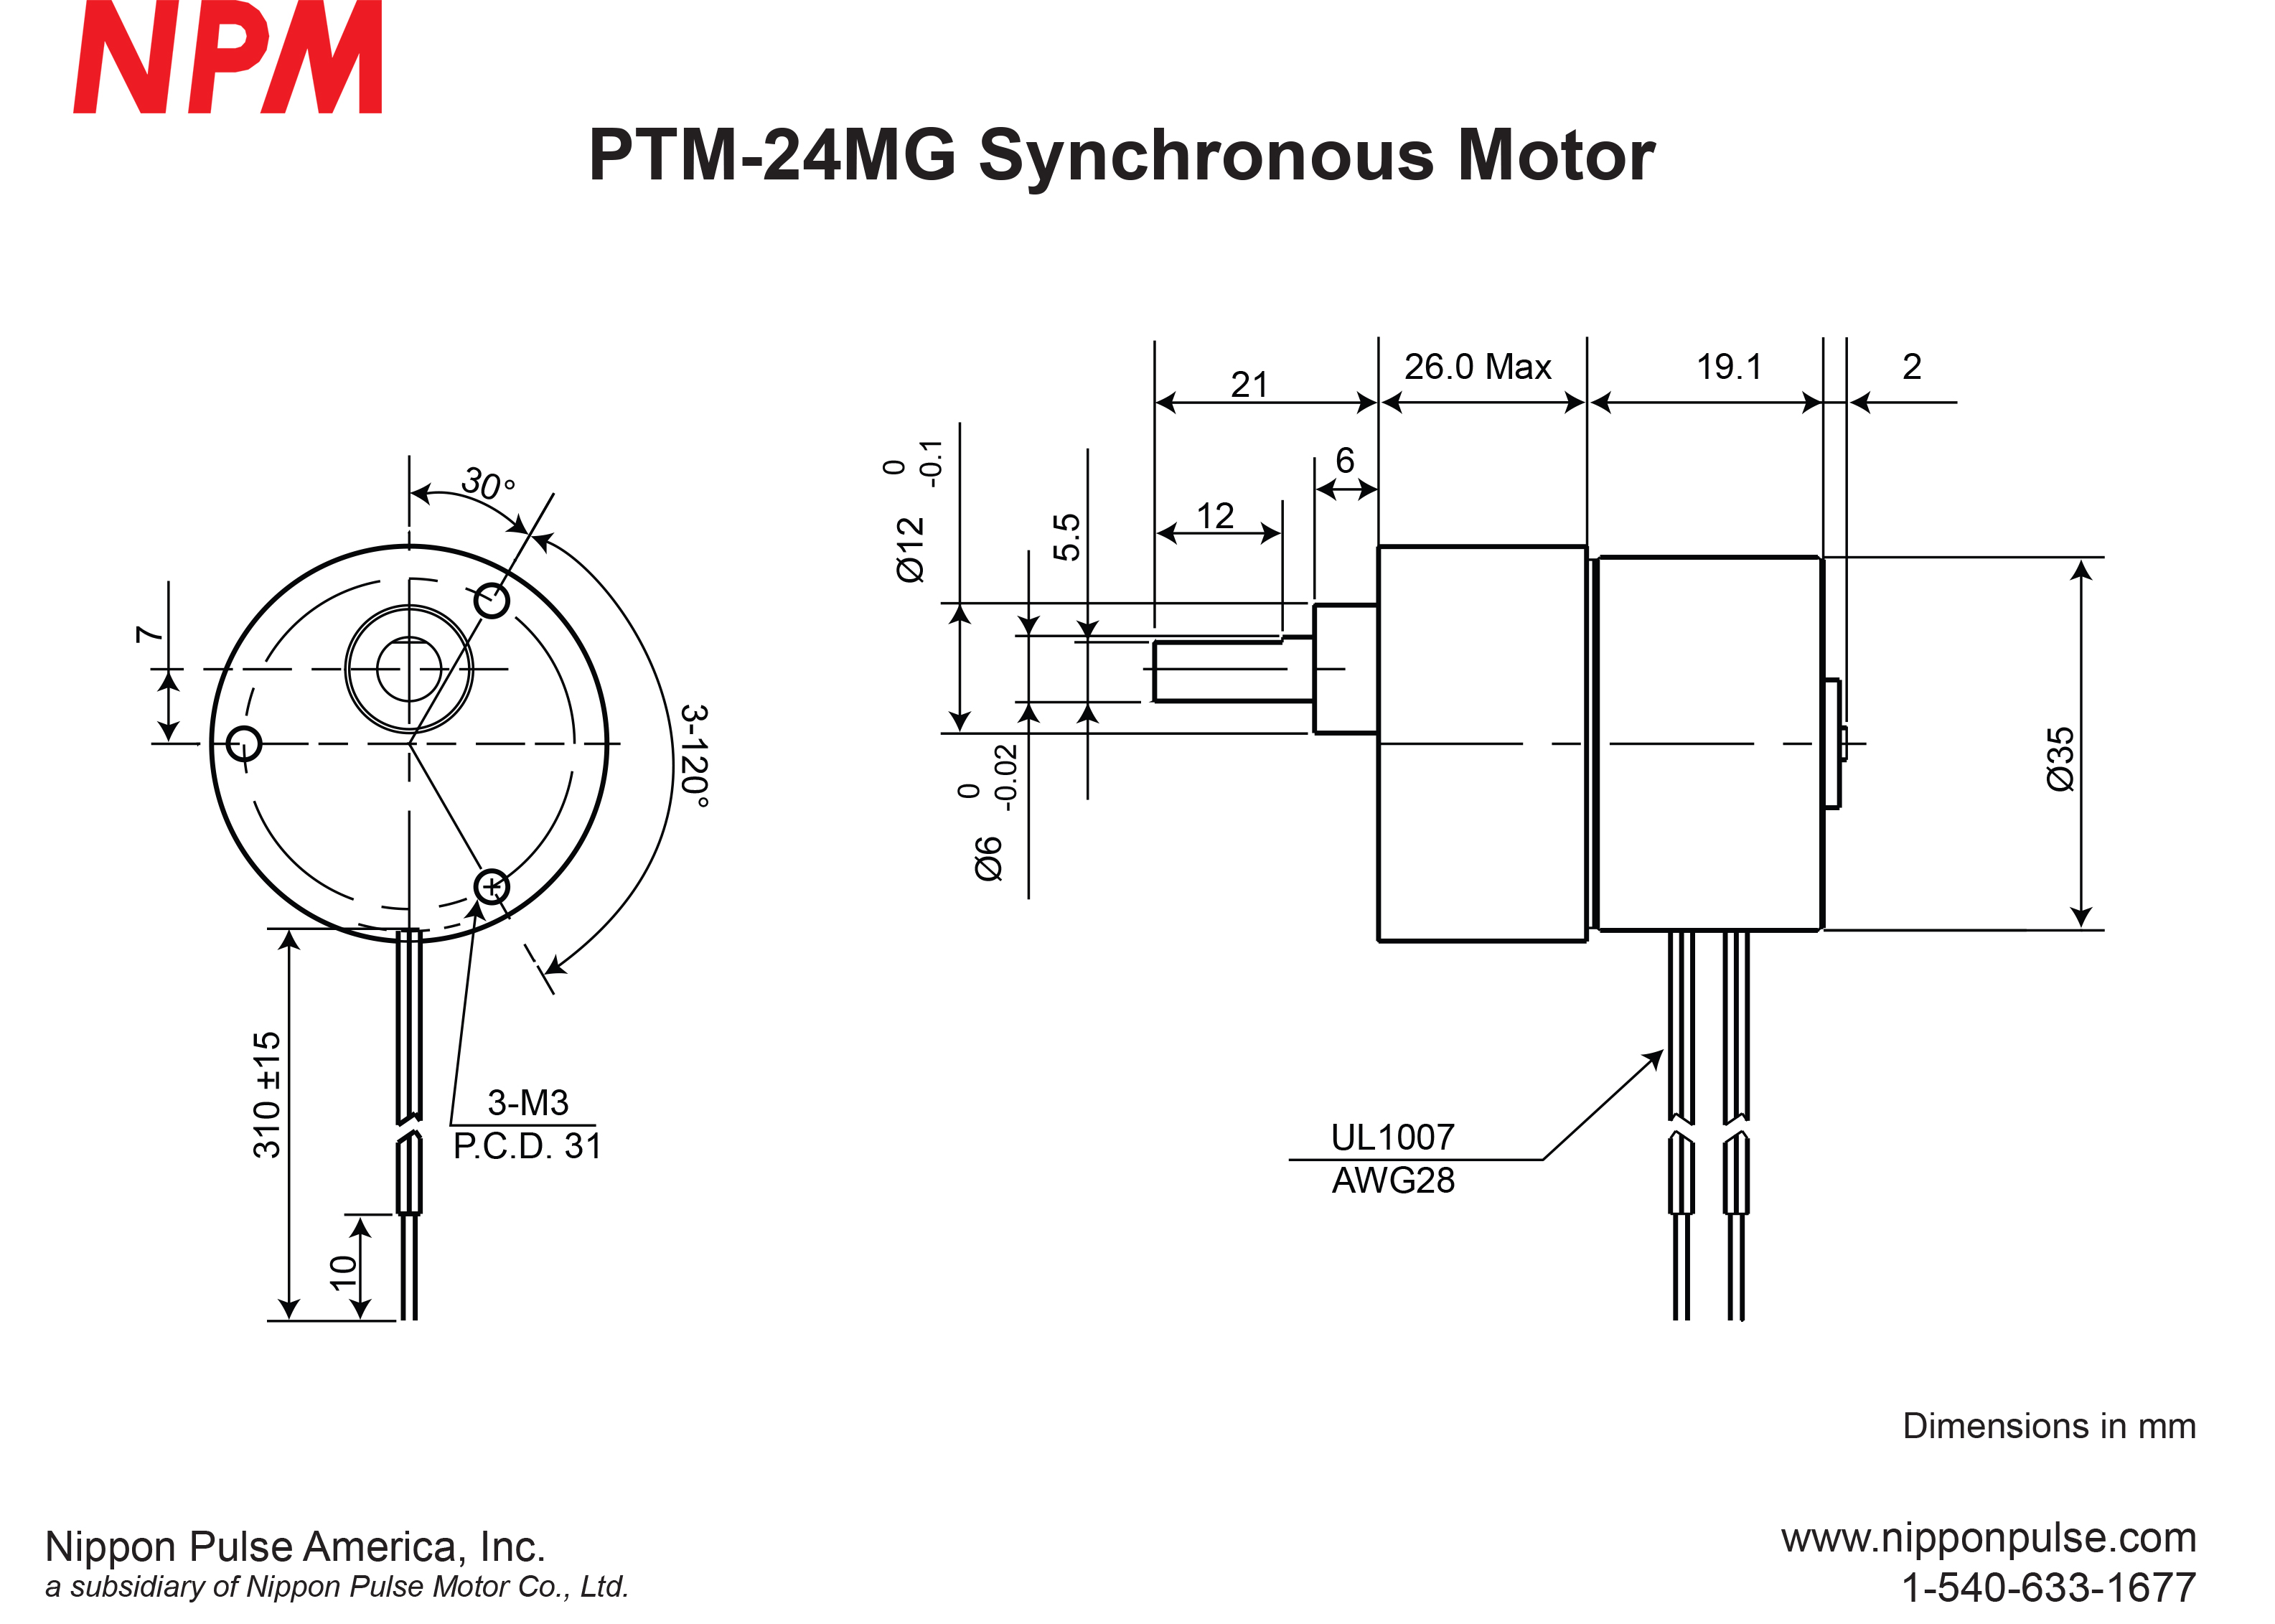 PTM-24MG(1/300) system drawing